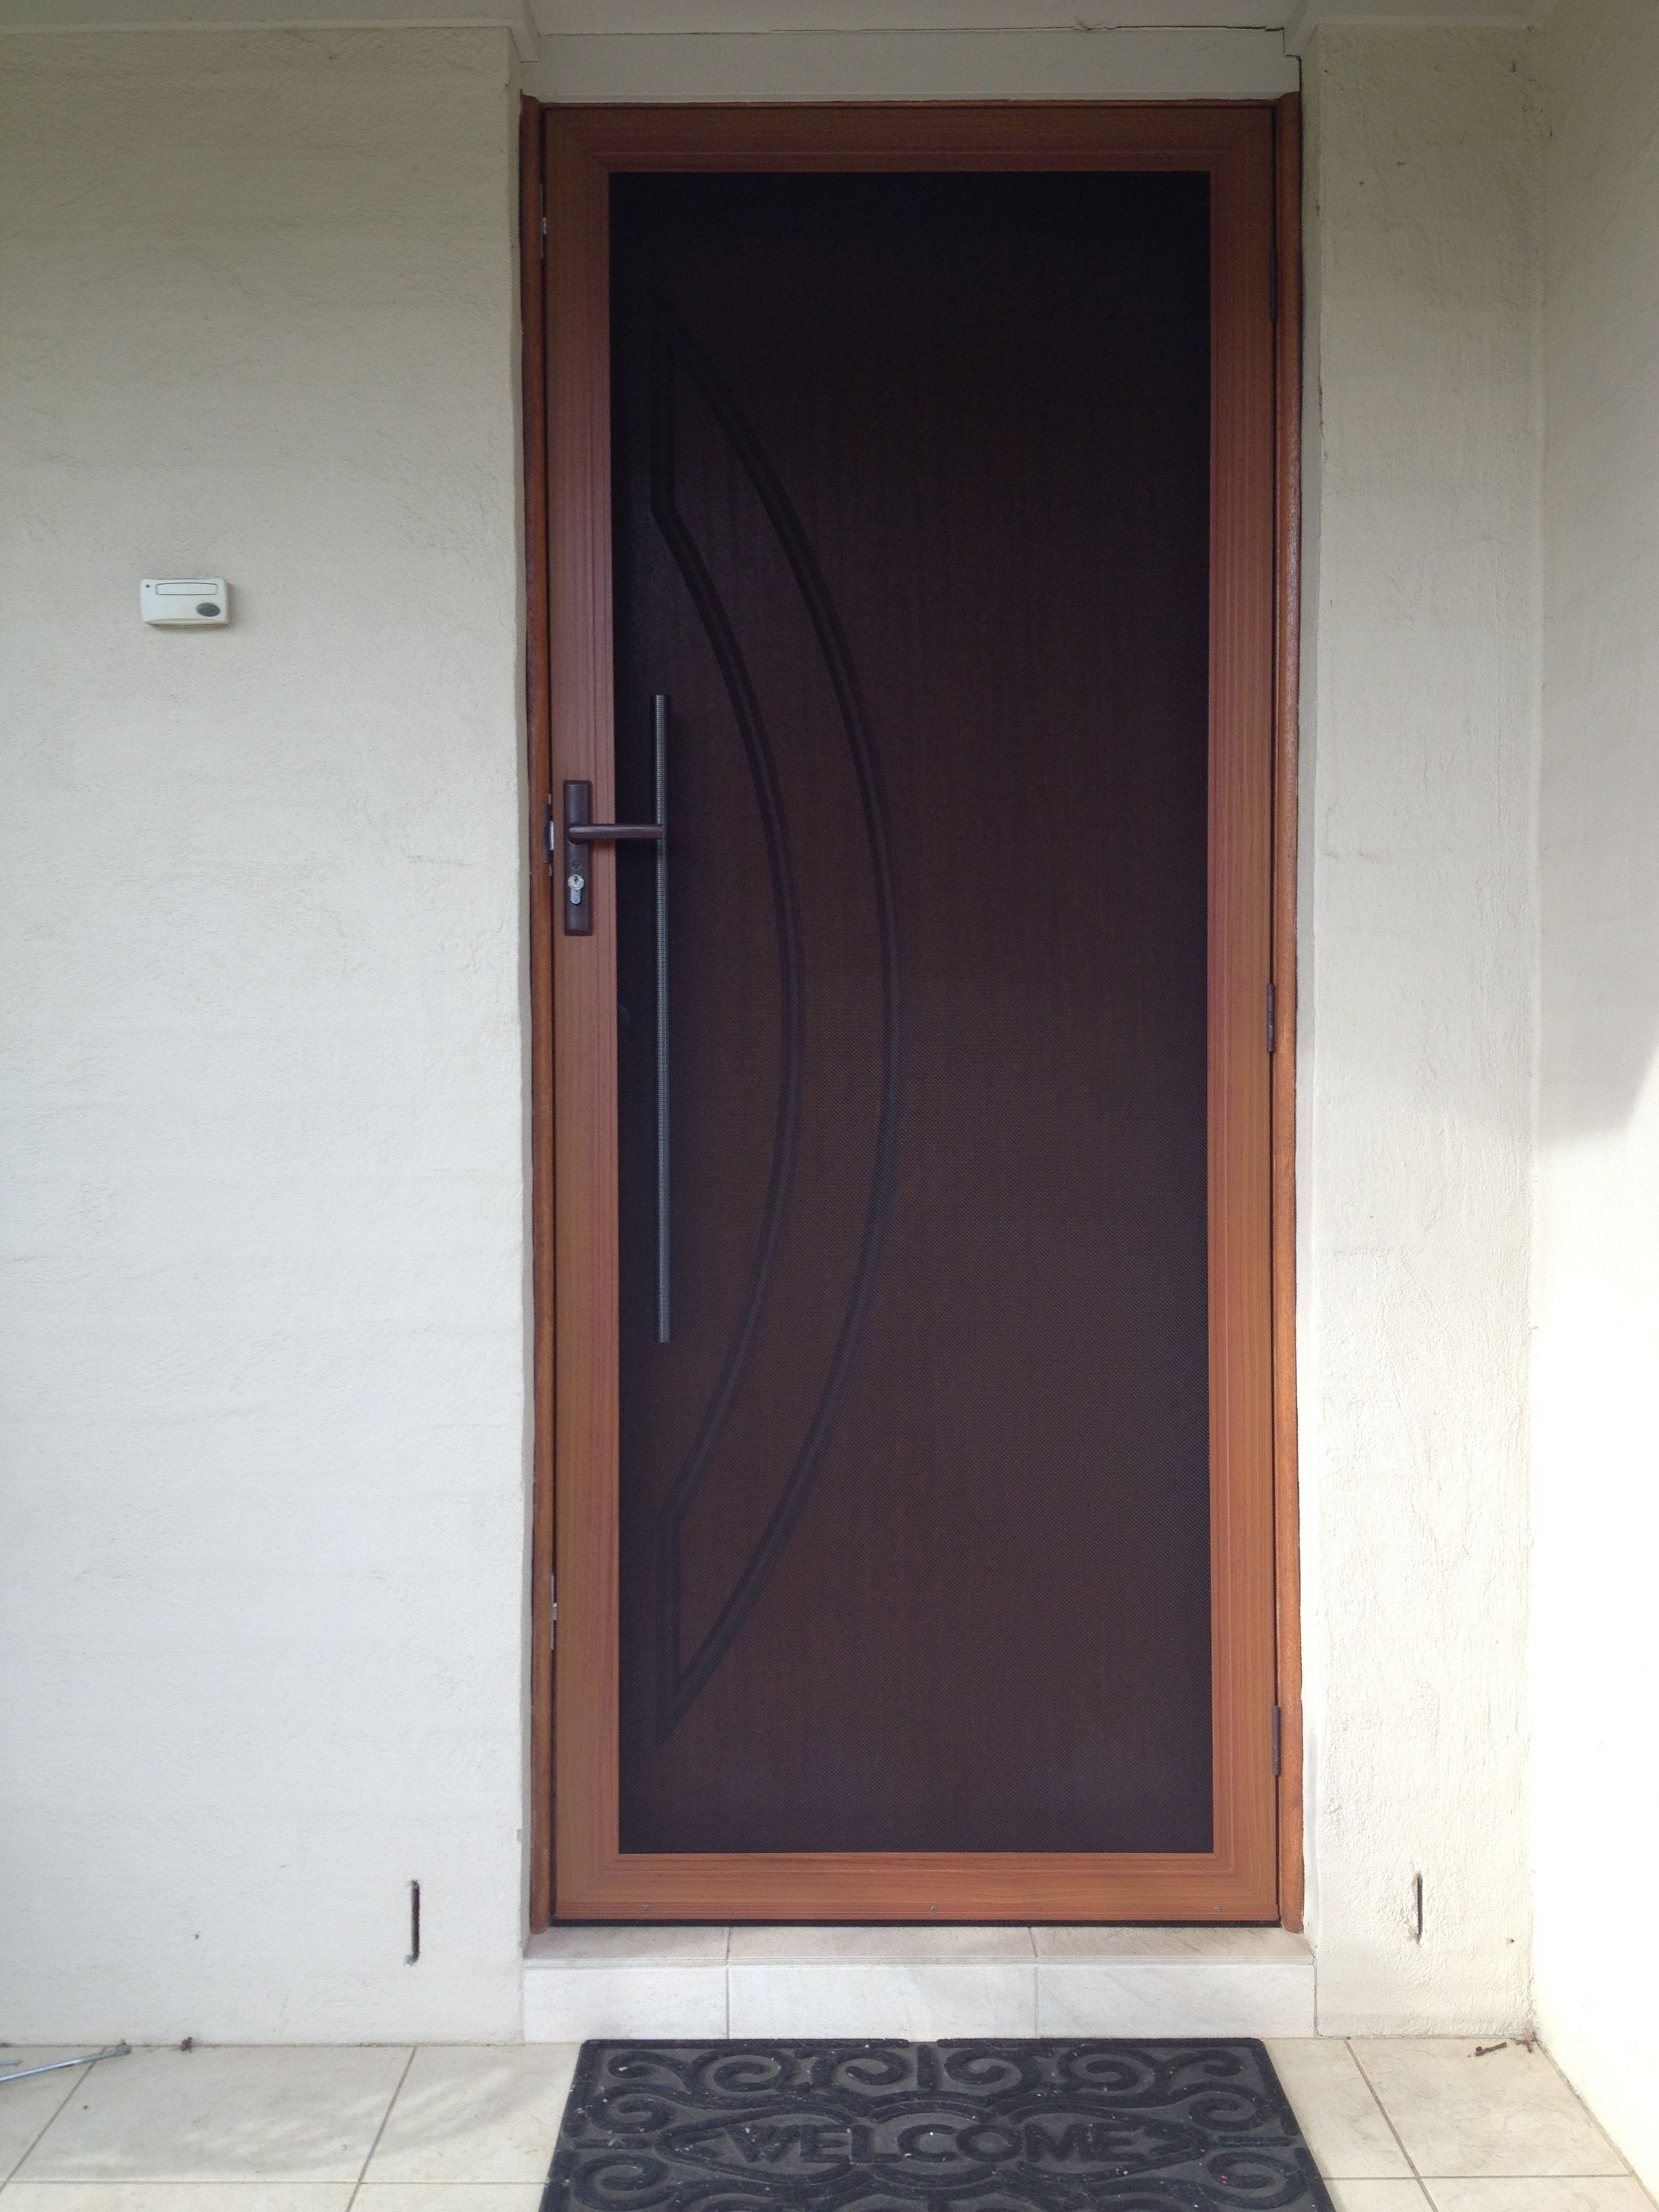 Wood Effect Hinged Security Door Effortlessly Matches Wooden Designer Front Screen